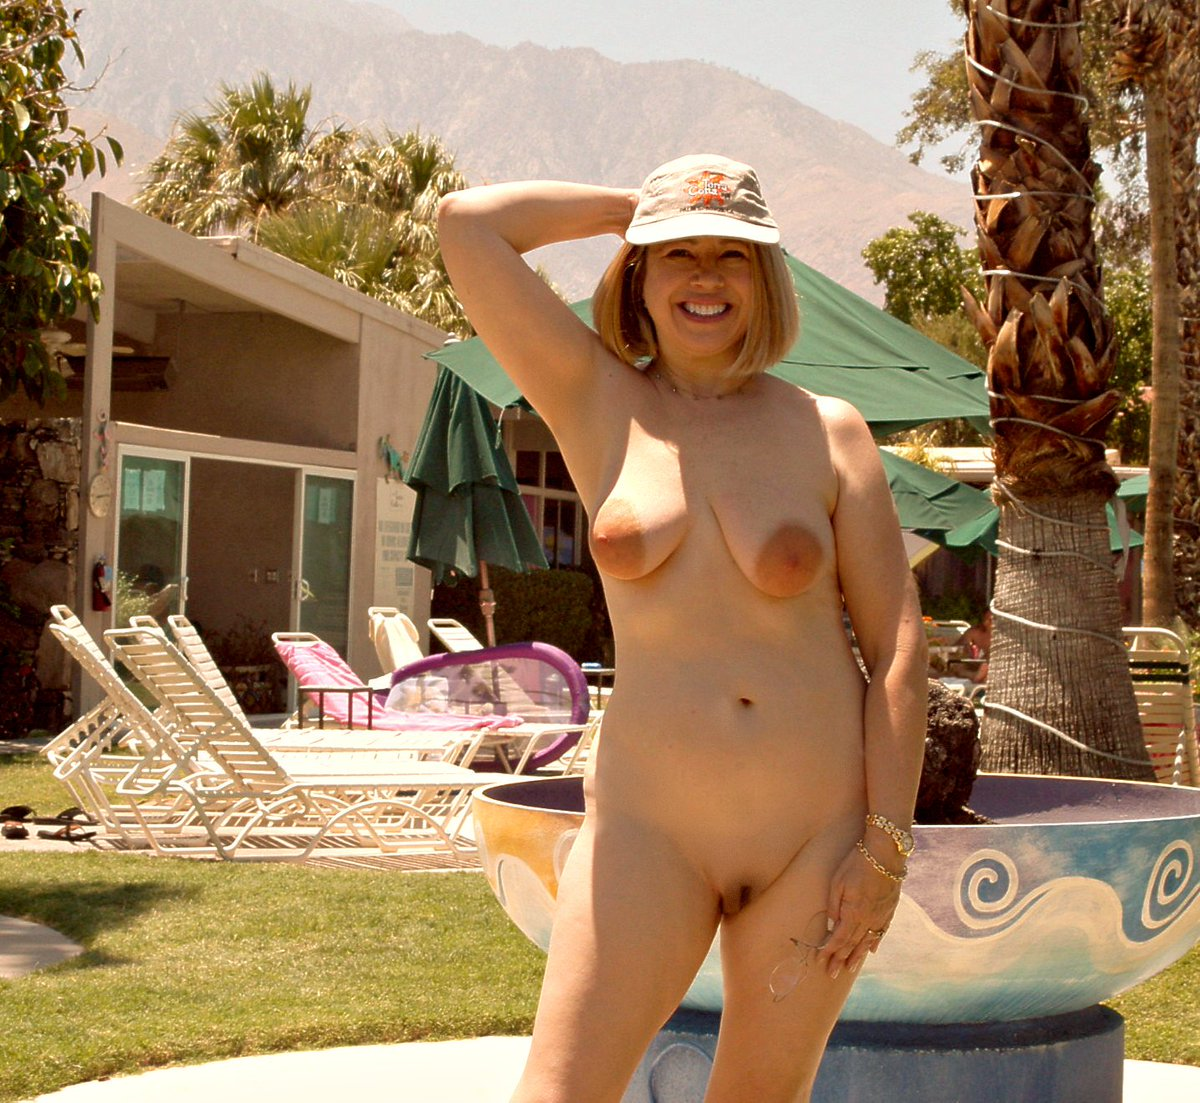 Swingers resorts palm springsca Beautiful Resort but - Review of Desert Sun Resort, Palm Springs, CA - TripAdvisor